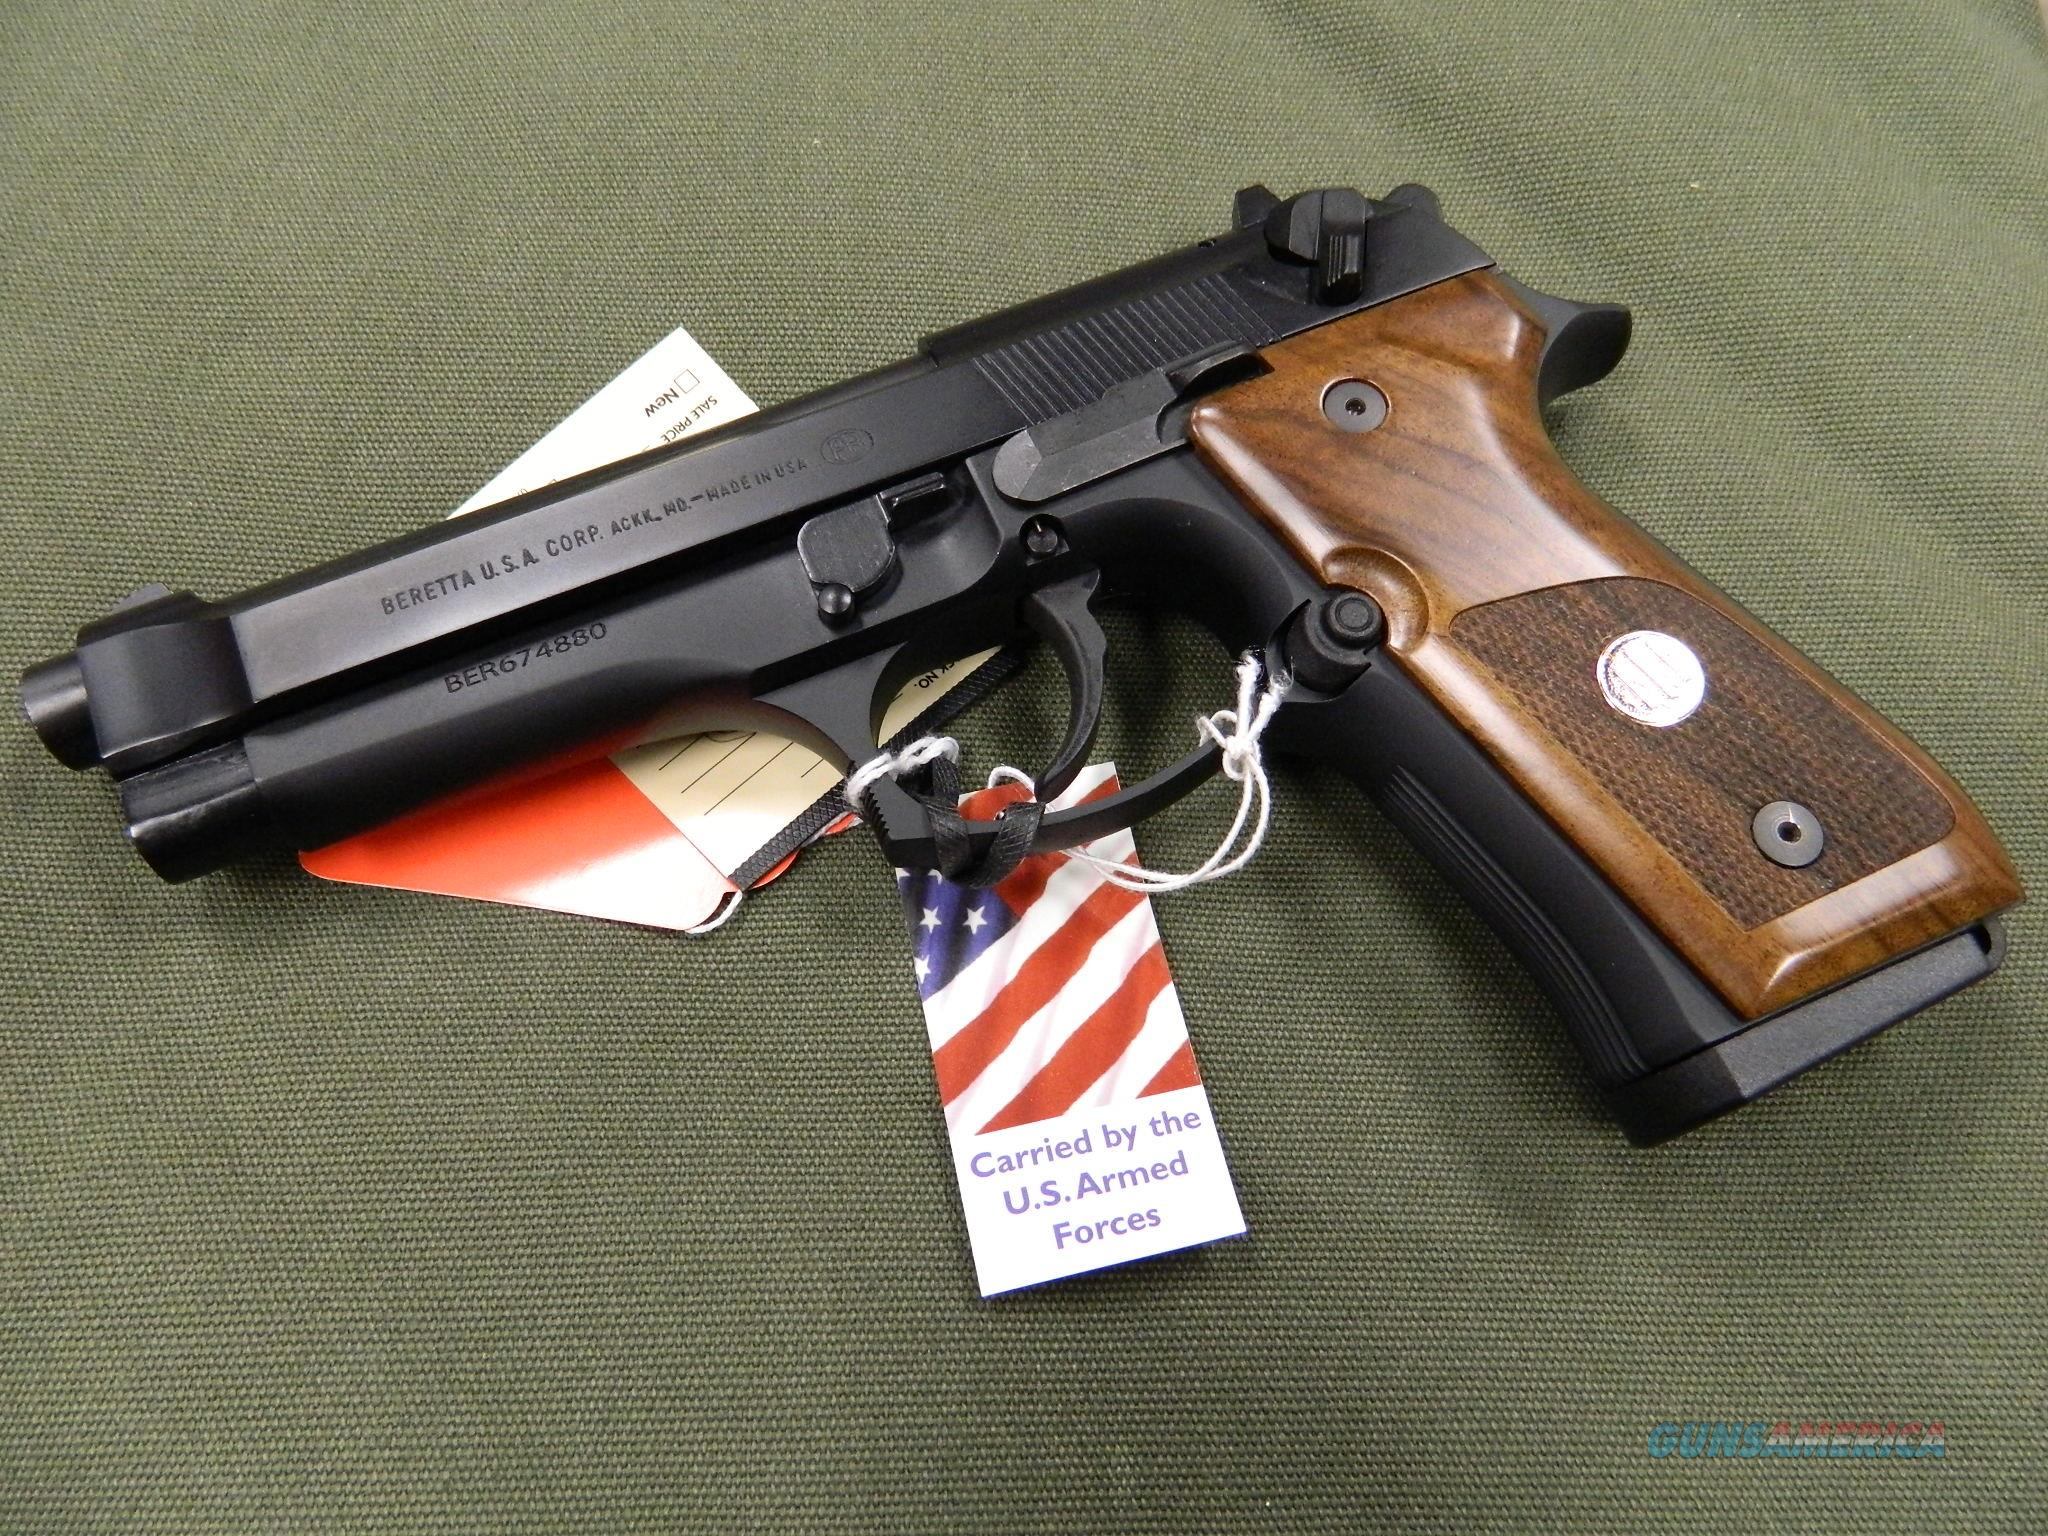 Beretta 92FS Trident with wood grips